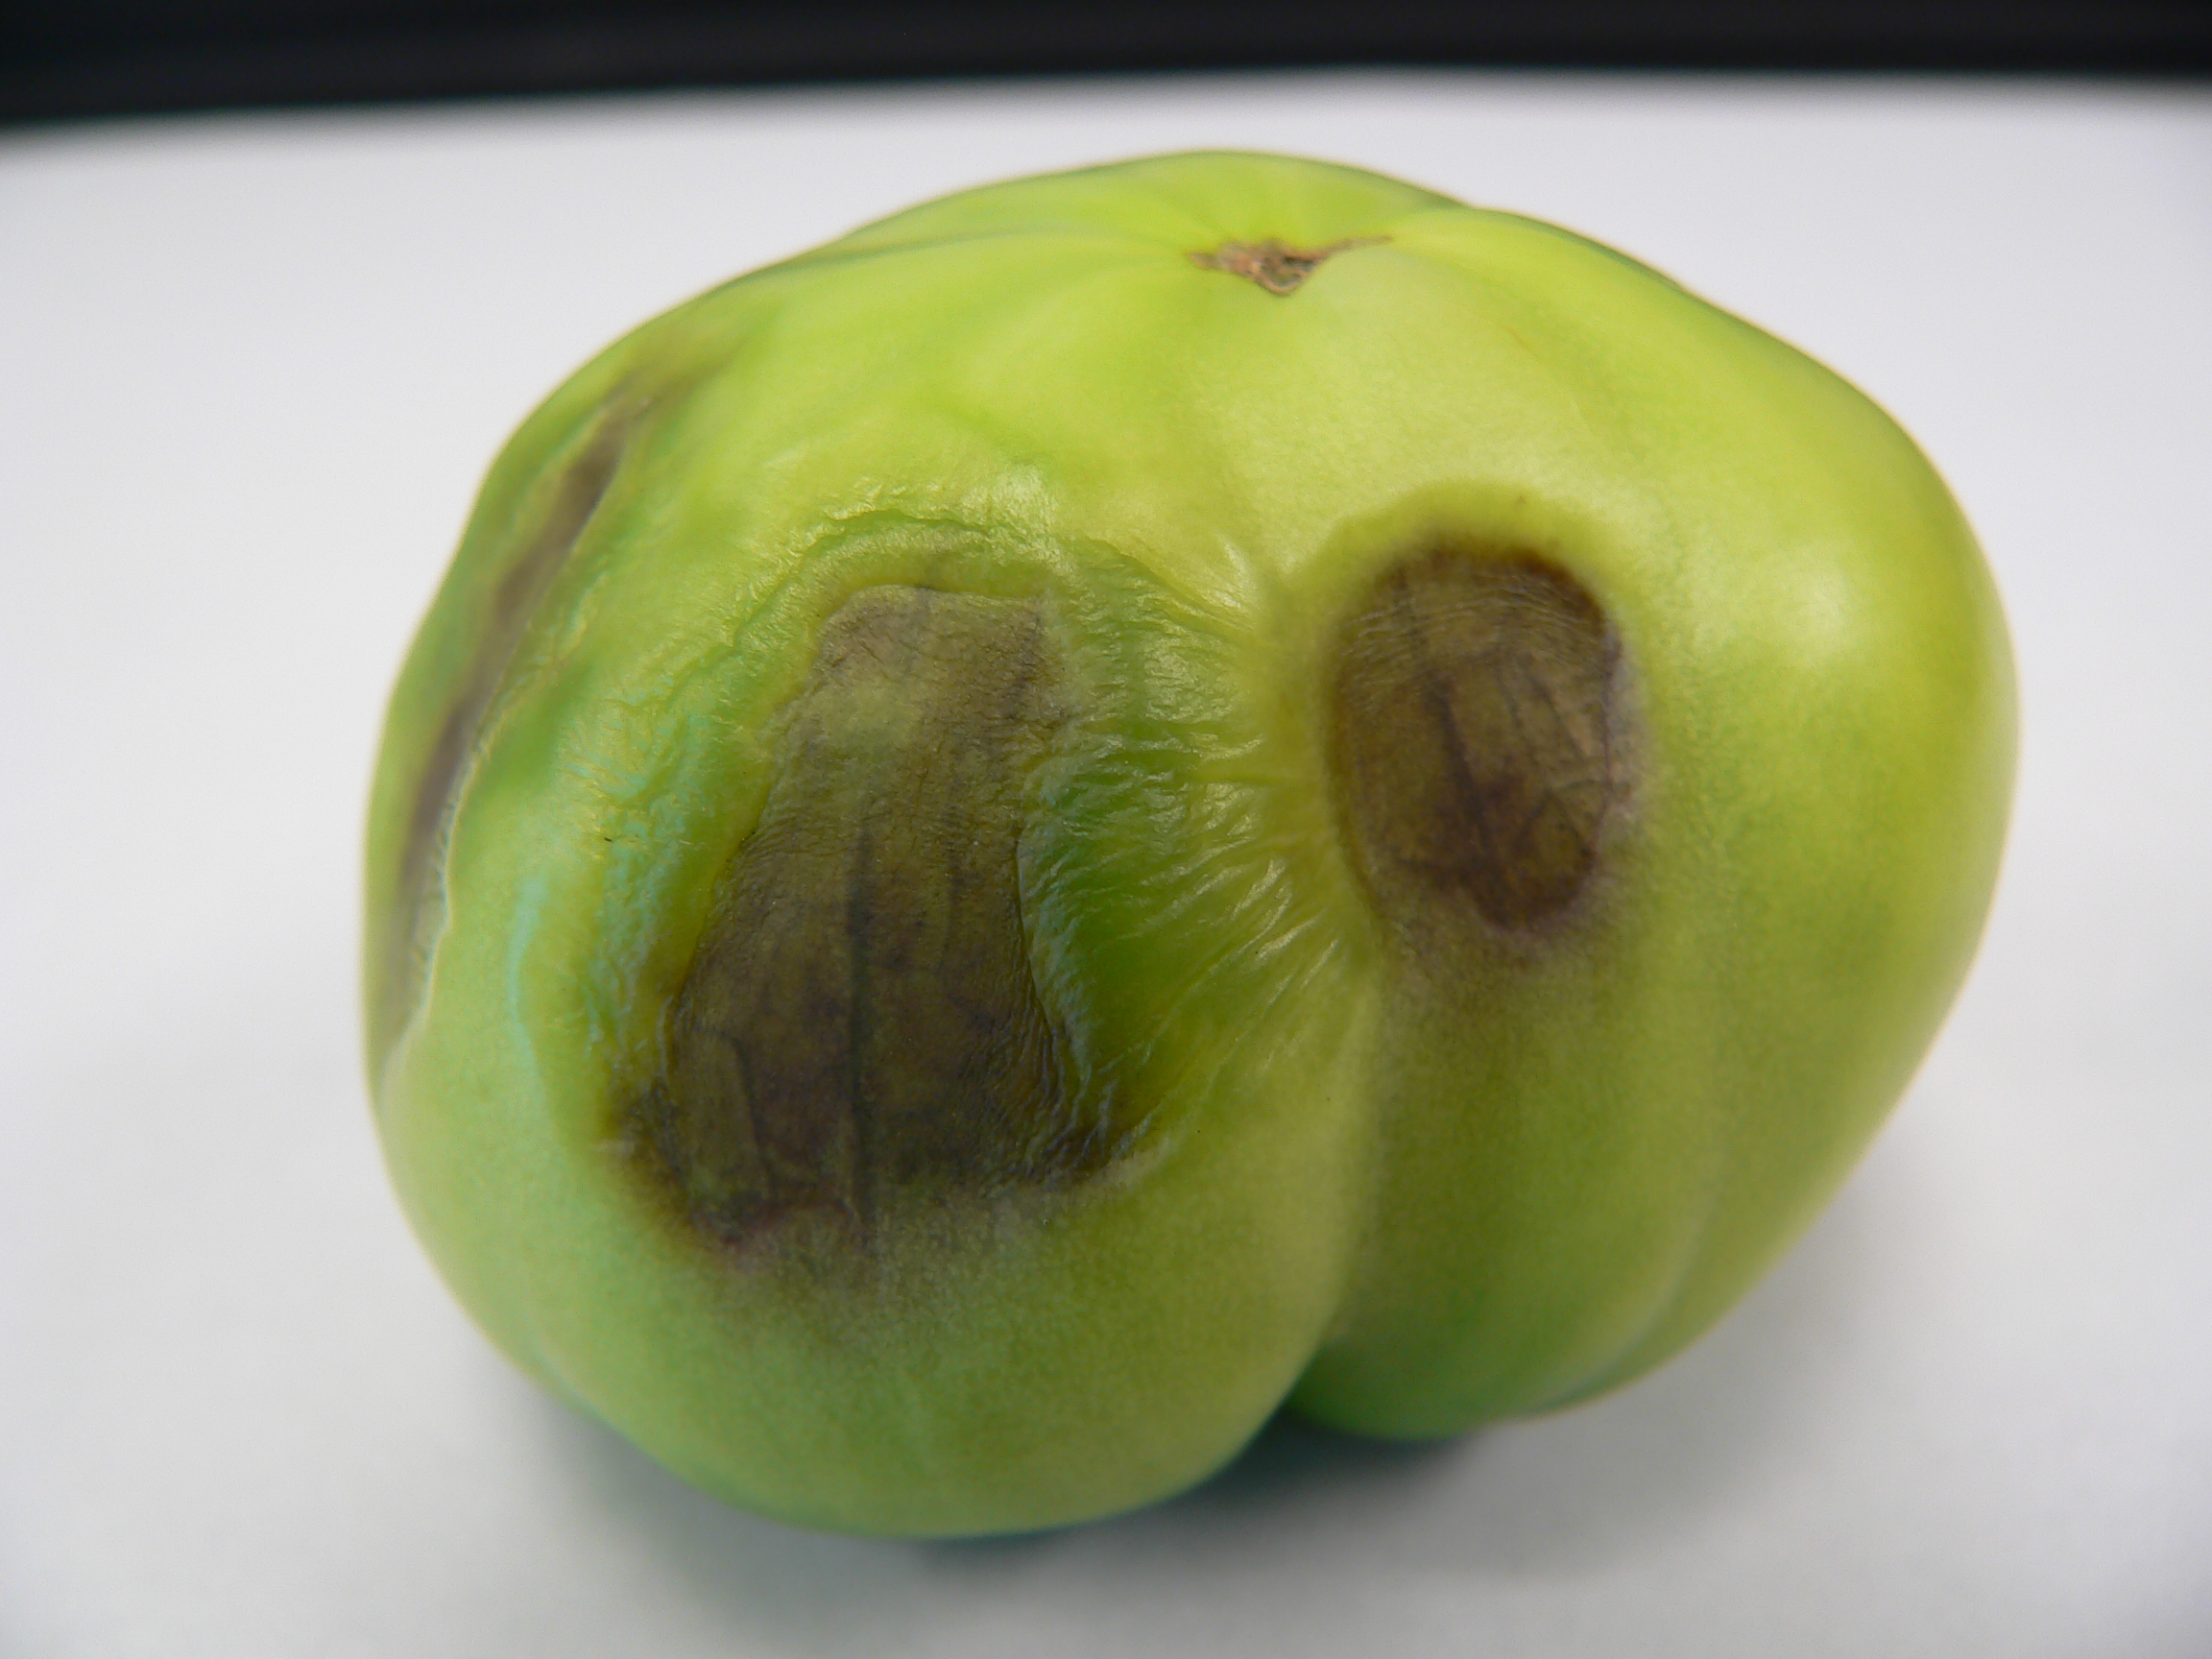 BER occurs when cell walls in fruit collapse, most commonly on the blossom end, but can occur on the side of the fruit as well.